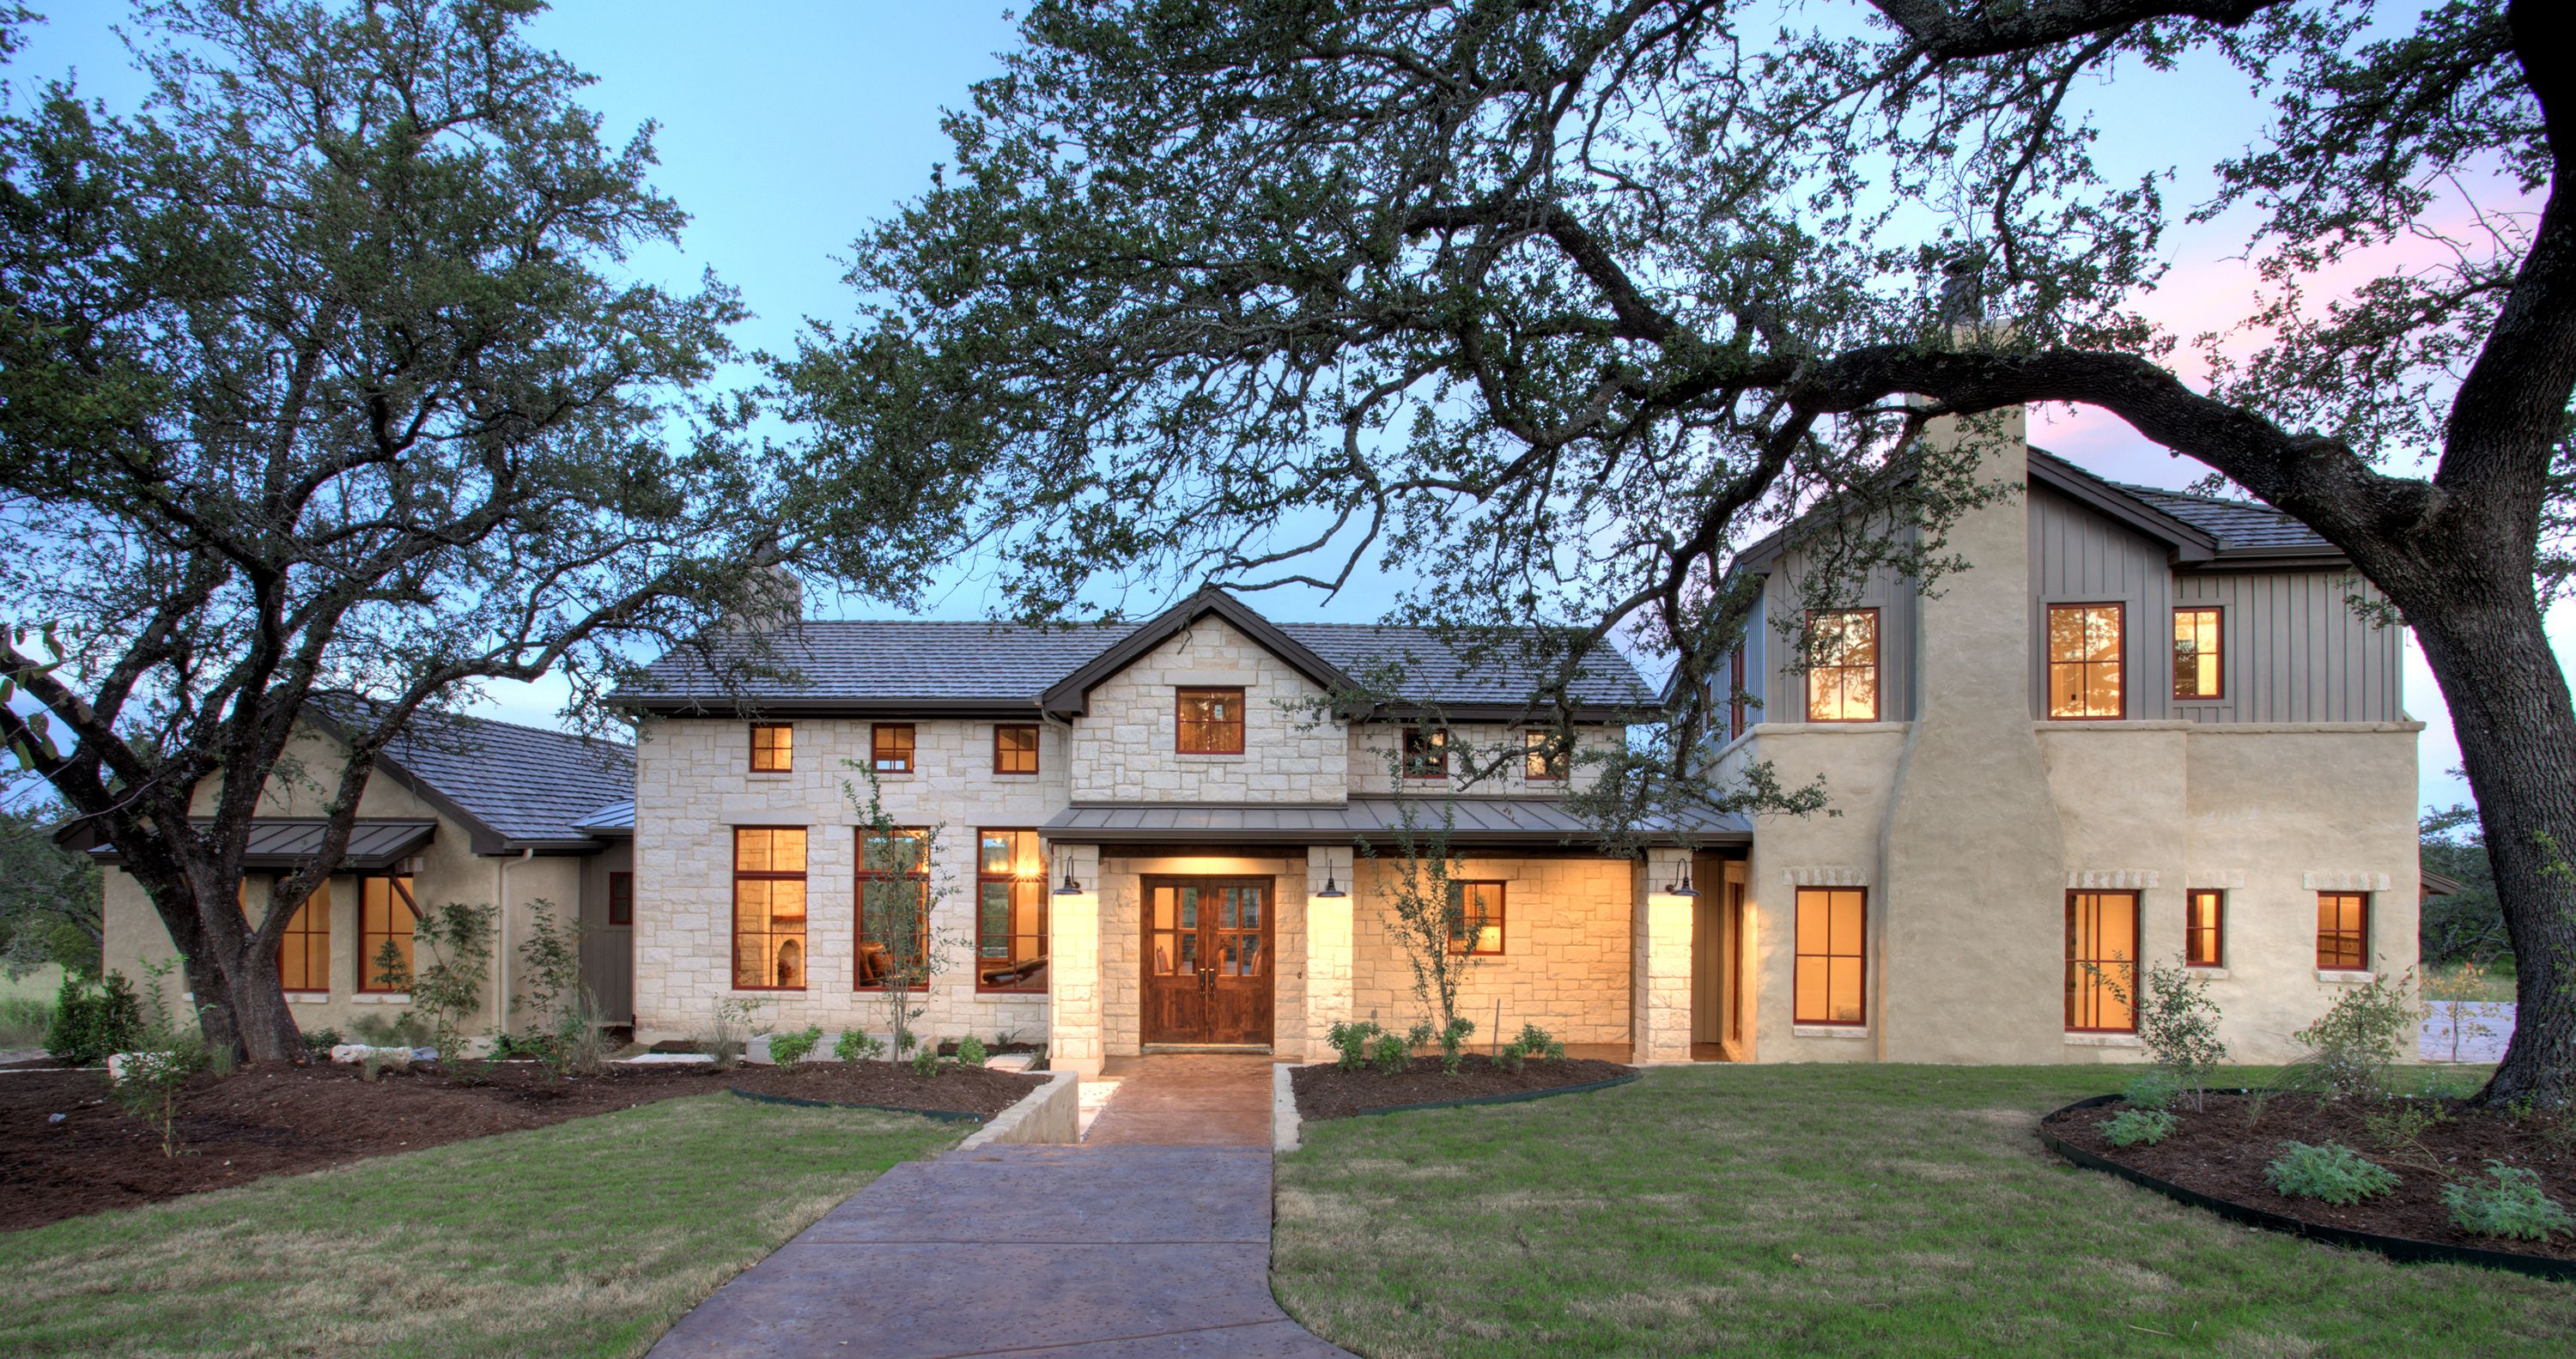 Texas hill country architecture floor plans joy studio for Hill country ranch house plans